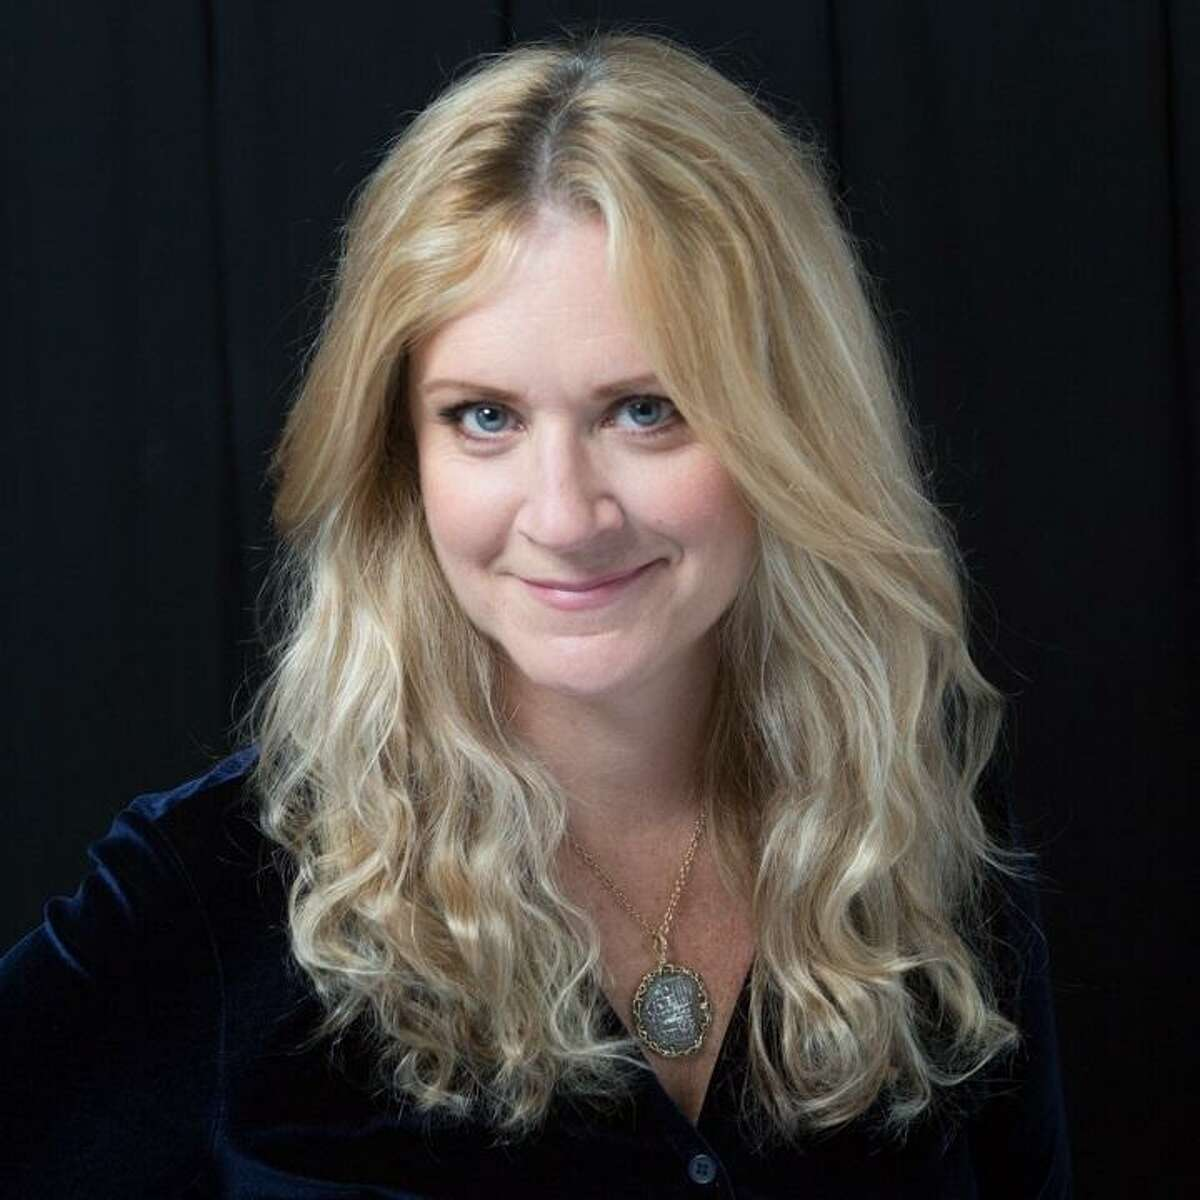 """GHOST TALK: Journalist, humorist and author Kris Frieswick will talk about her new book, """"The Ghost Manuscript,"""" a suspenseful quest for King Arthur's tomb written in the spirit of great thrillers with female protagonists that takes readers to Wales, Boston and eventually to Cape Cod, on Wednesday, April 3, at 7 p.m. at R.J. Julia Booksellers, 768 Boston Post Road in Madison. For more information, call 203-245-3959."""